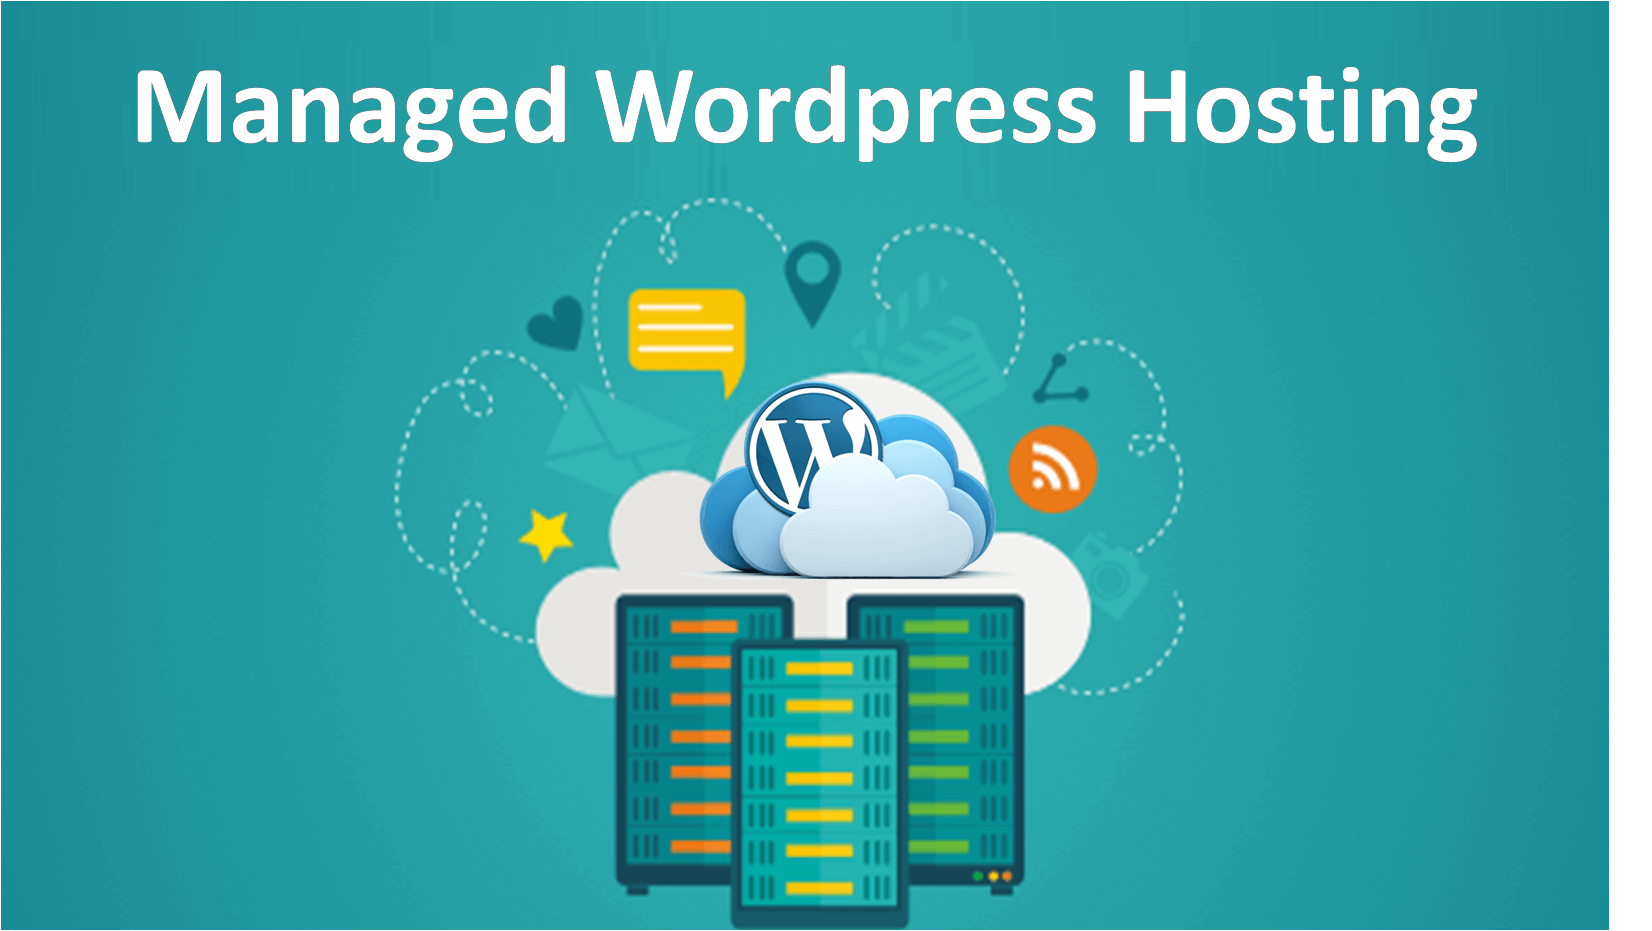 Managed WordPress Hosting Graphic by London Creative Designs, Wordpress agency London